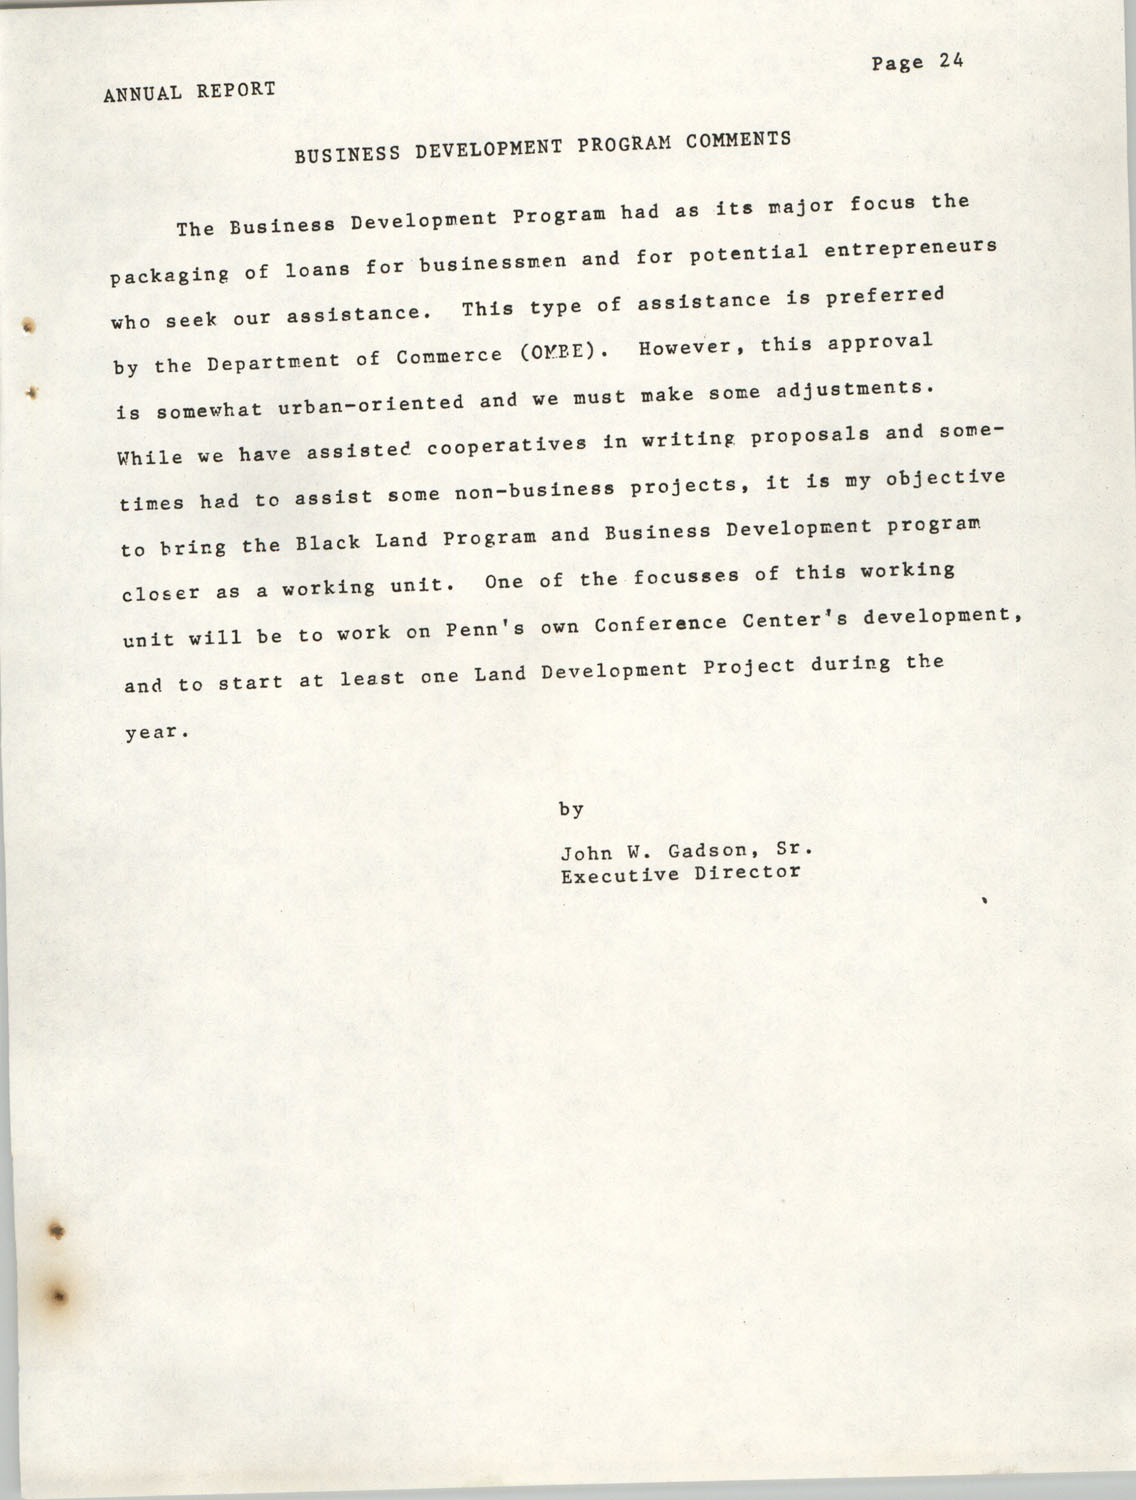 Annual Report, Penn Community Services, 1974, Page 24